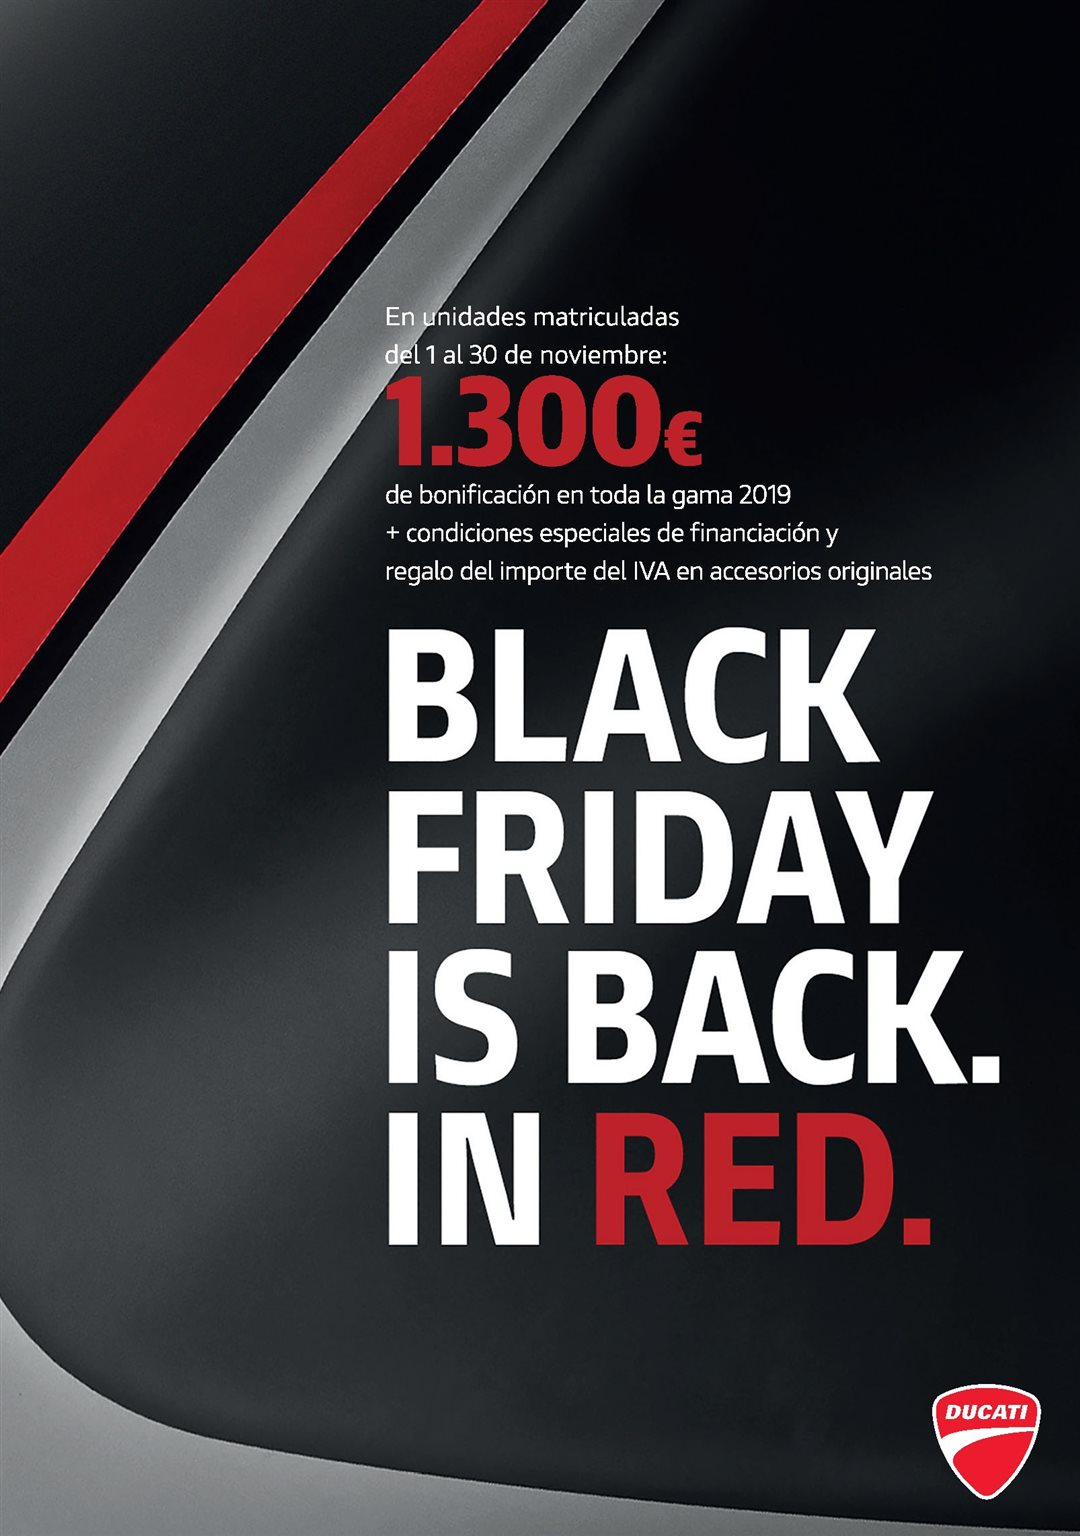 BLACK FRIDAY IS BACK.IN RED